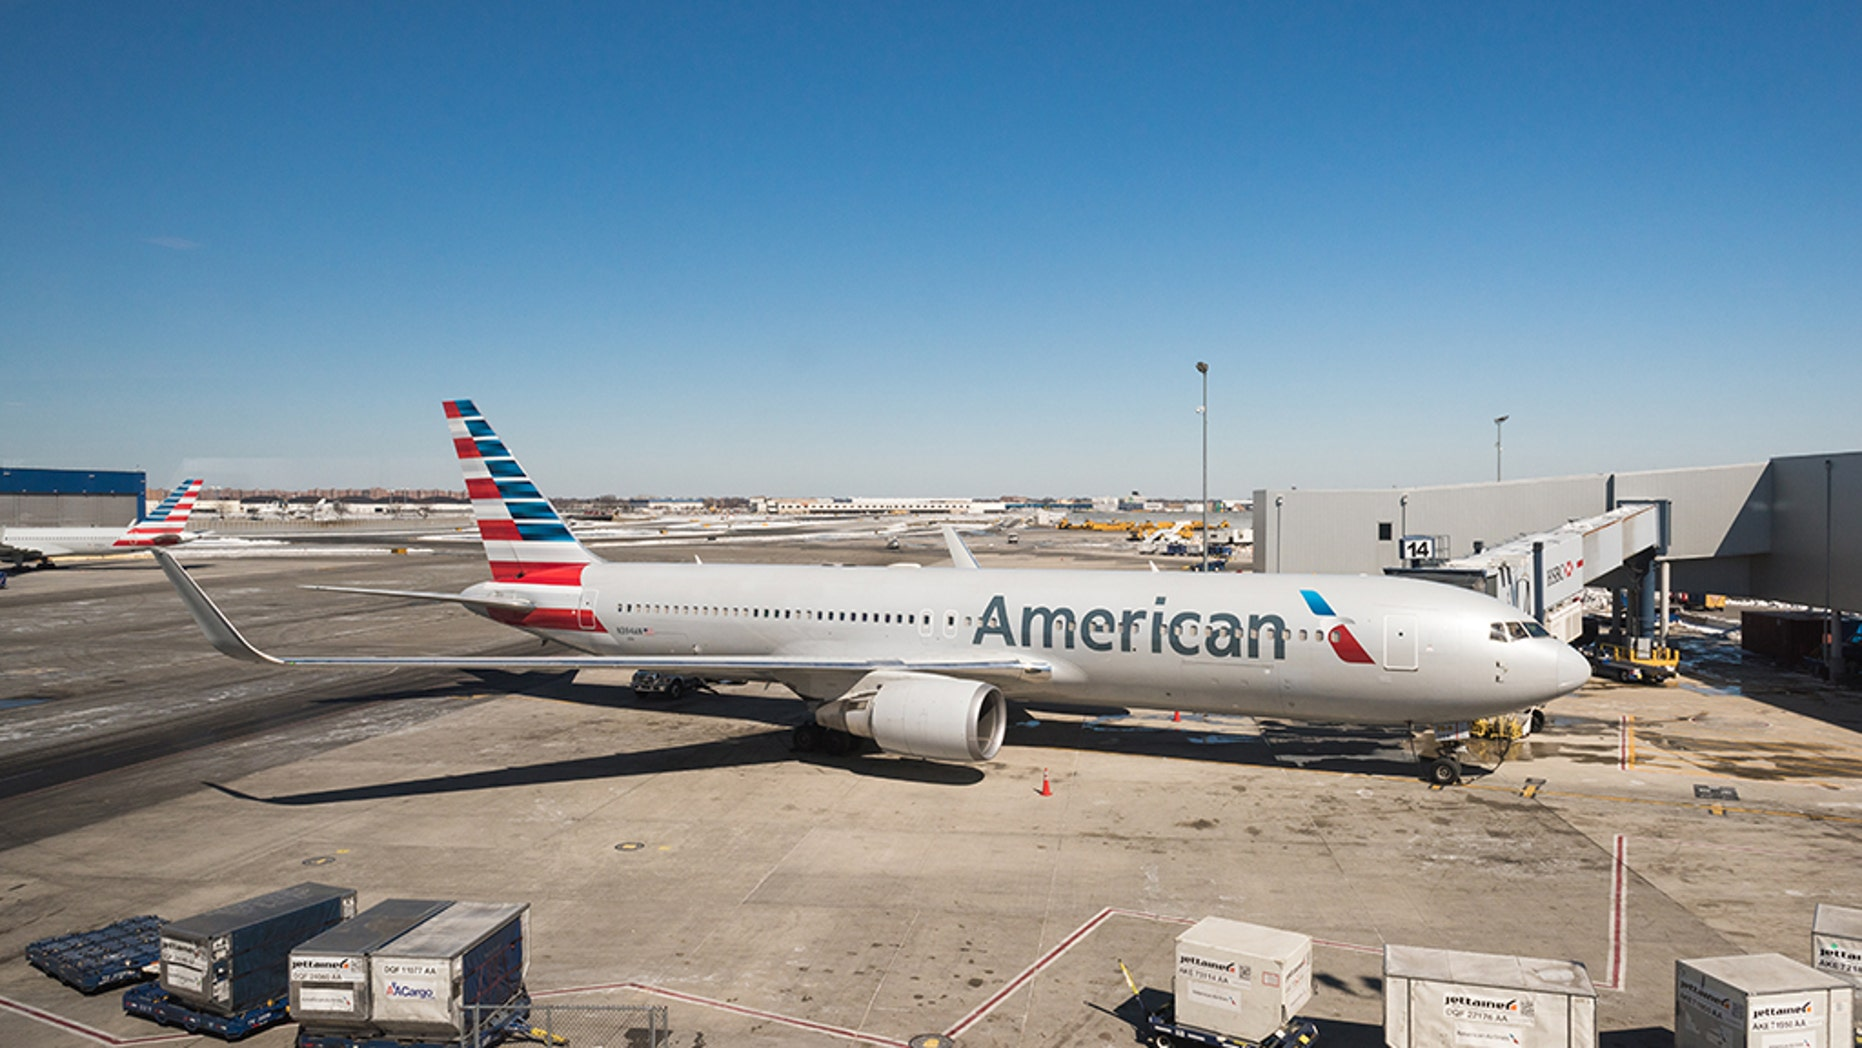 Family kicked off American Airlines flight after passengers complain about body odor